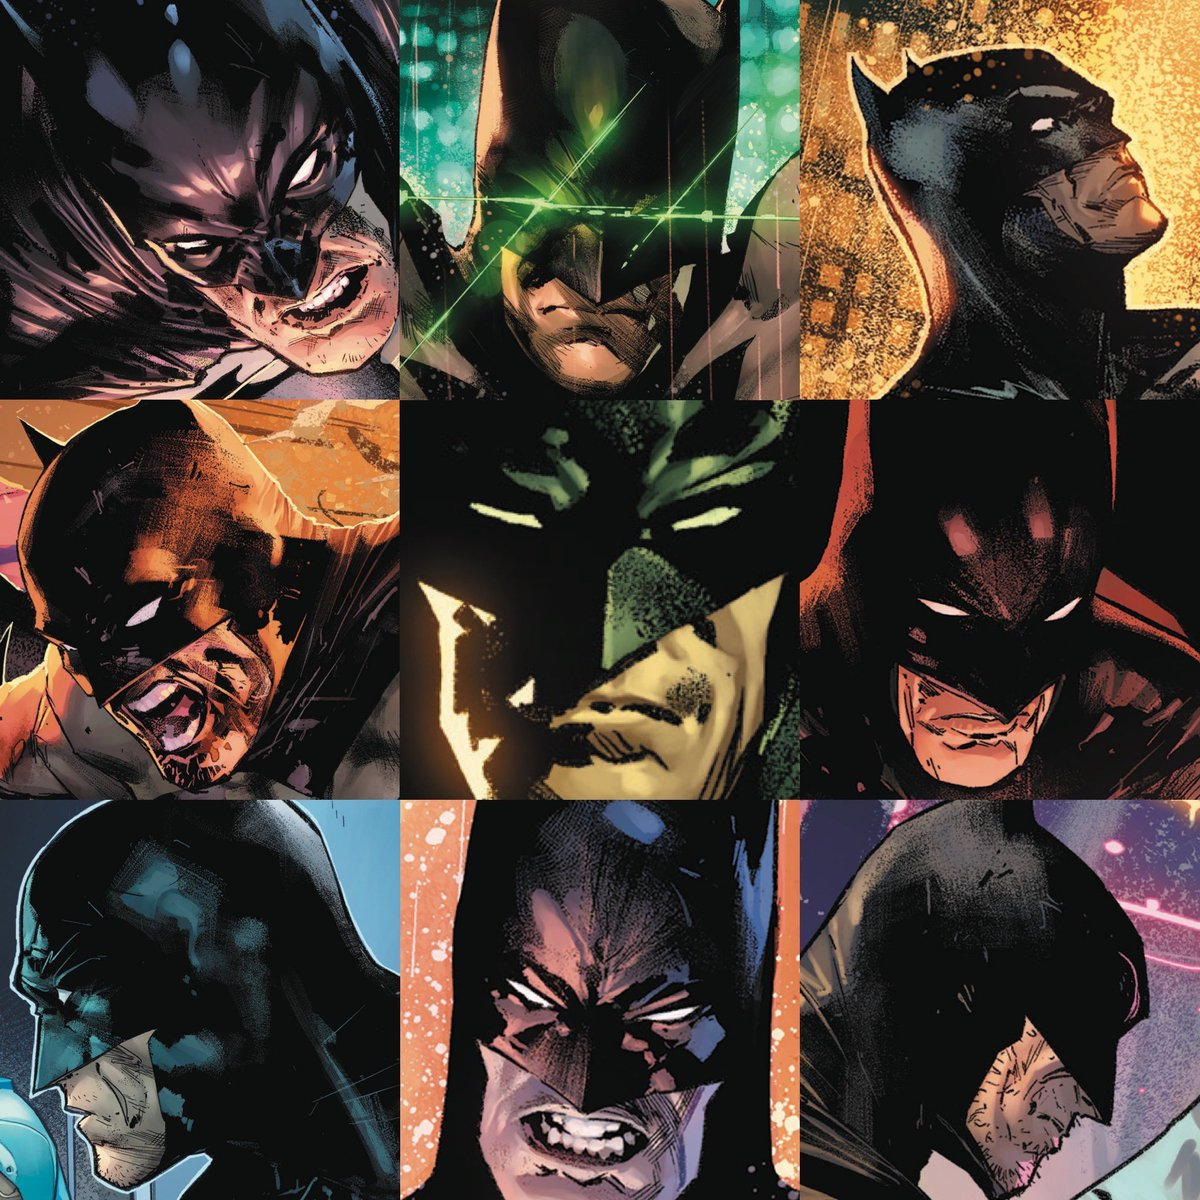 And here you got some #Batman faces too!🦇 #faceyourart  colors by @tomeu_morey